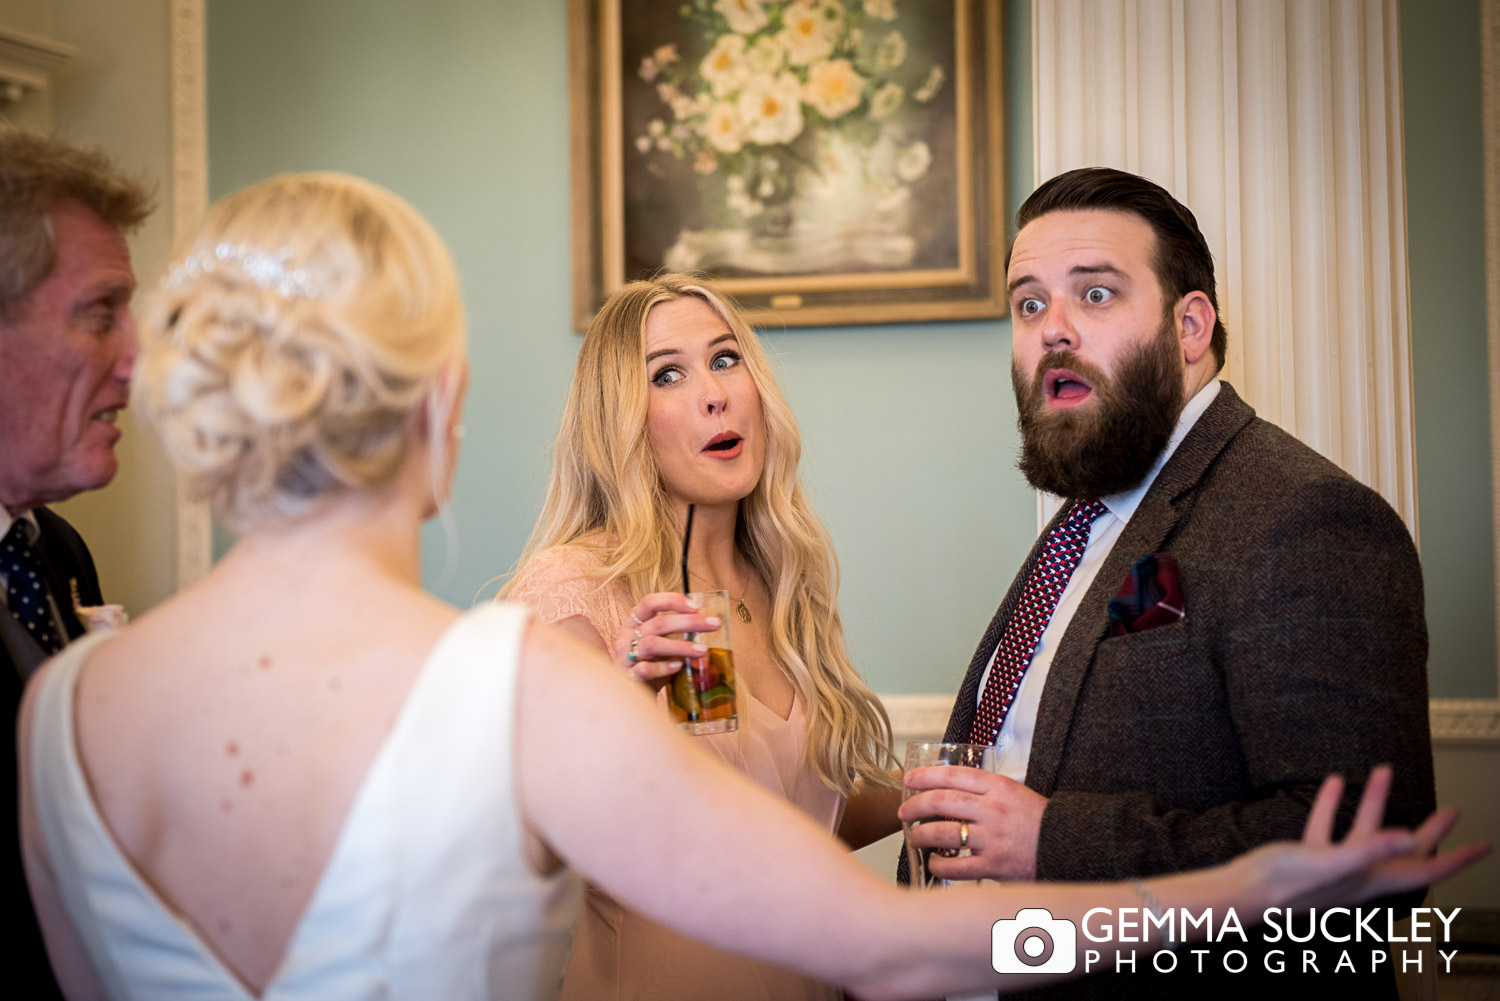 guests looking shocked during wedding at Denton hall